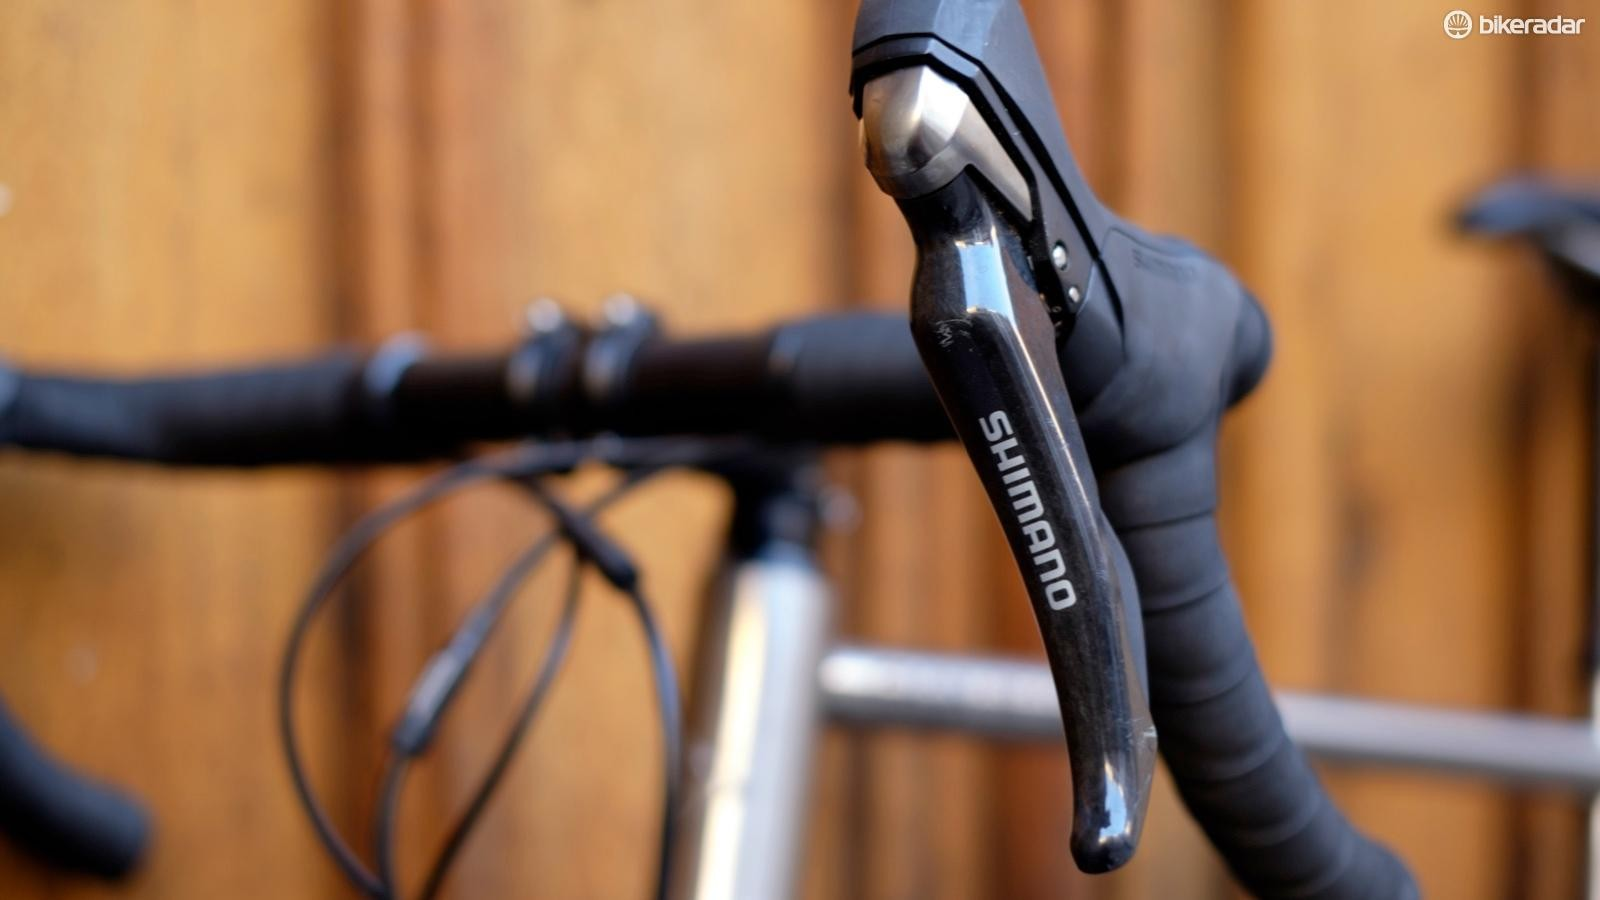 Our test bike came with the older Ultegra-level brake levers, though as specced the bike will feature the newer 105-level levers